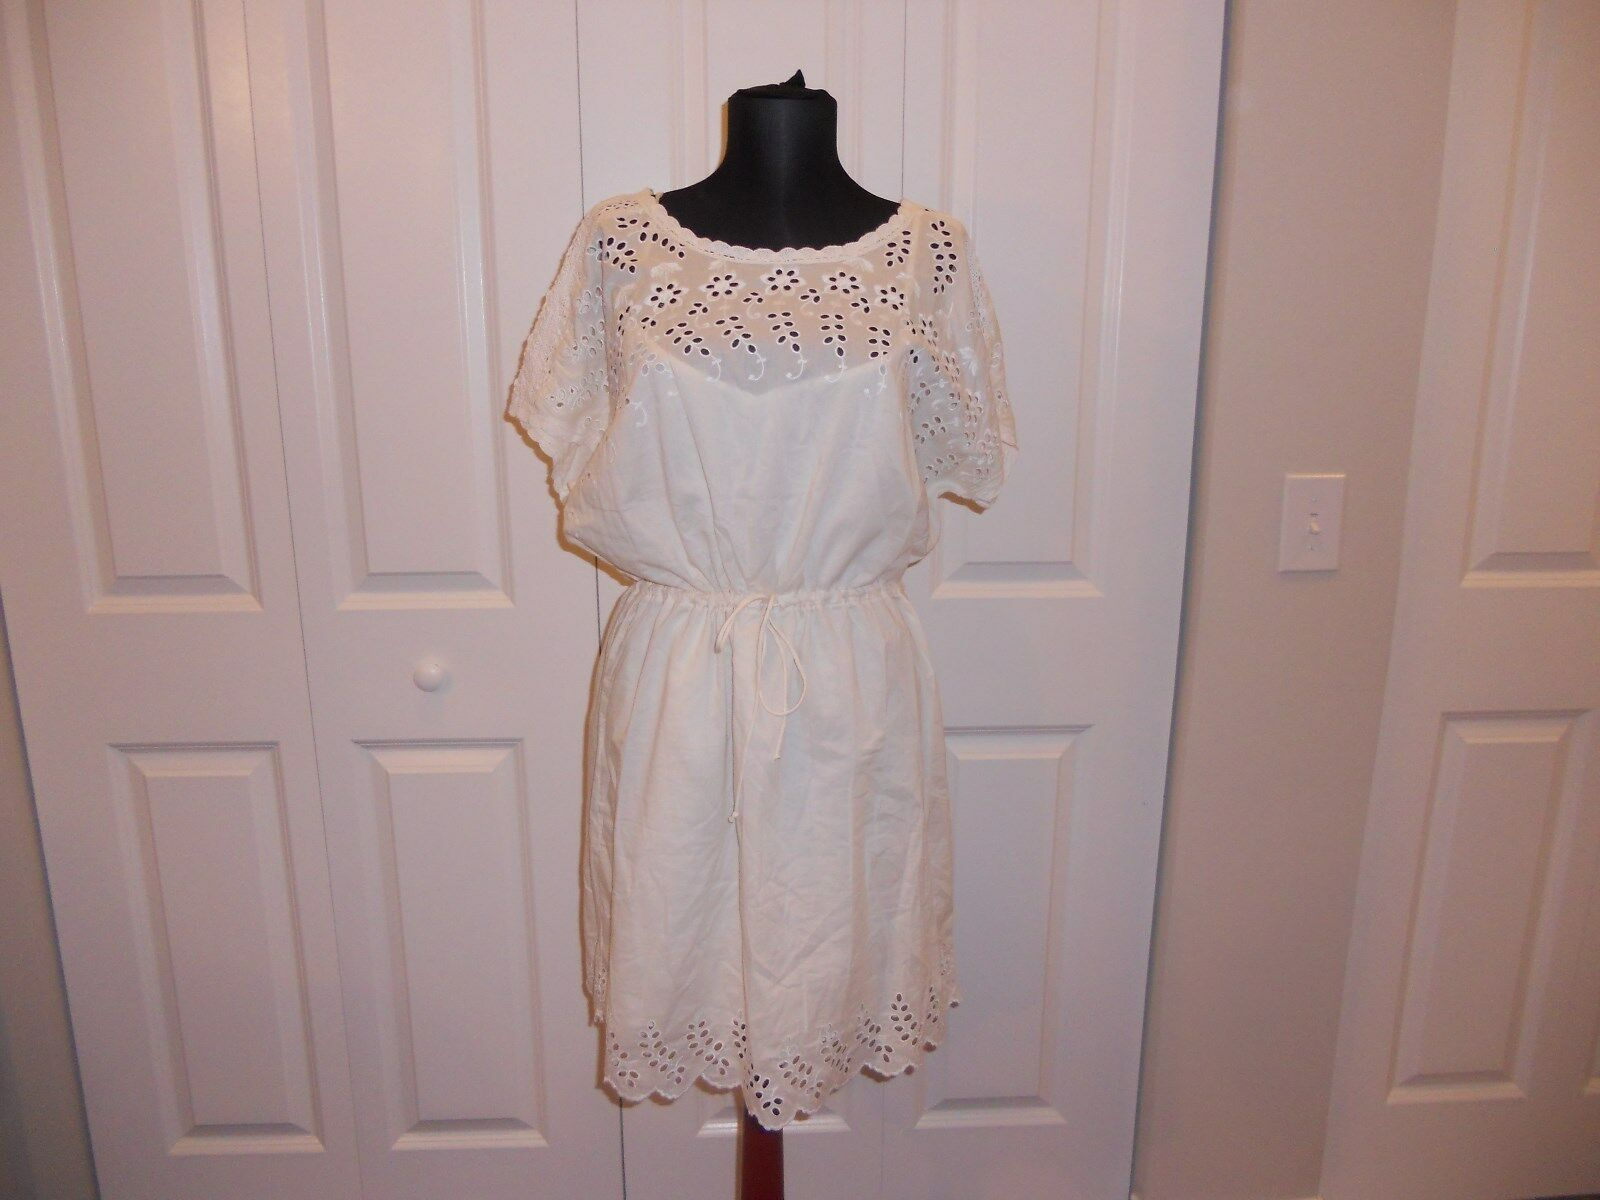 NWT MADEWELL 1937 EYELET WILDFIELD DRESS IN CREAM SIZE 12